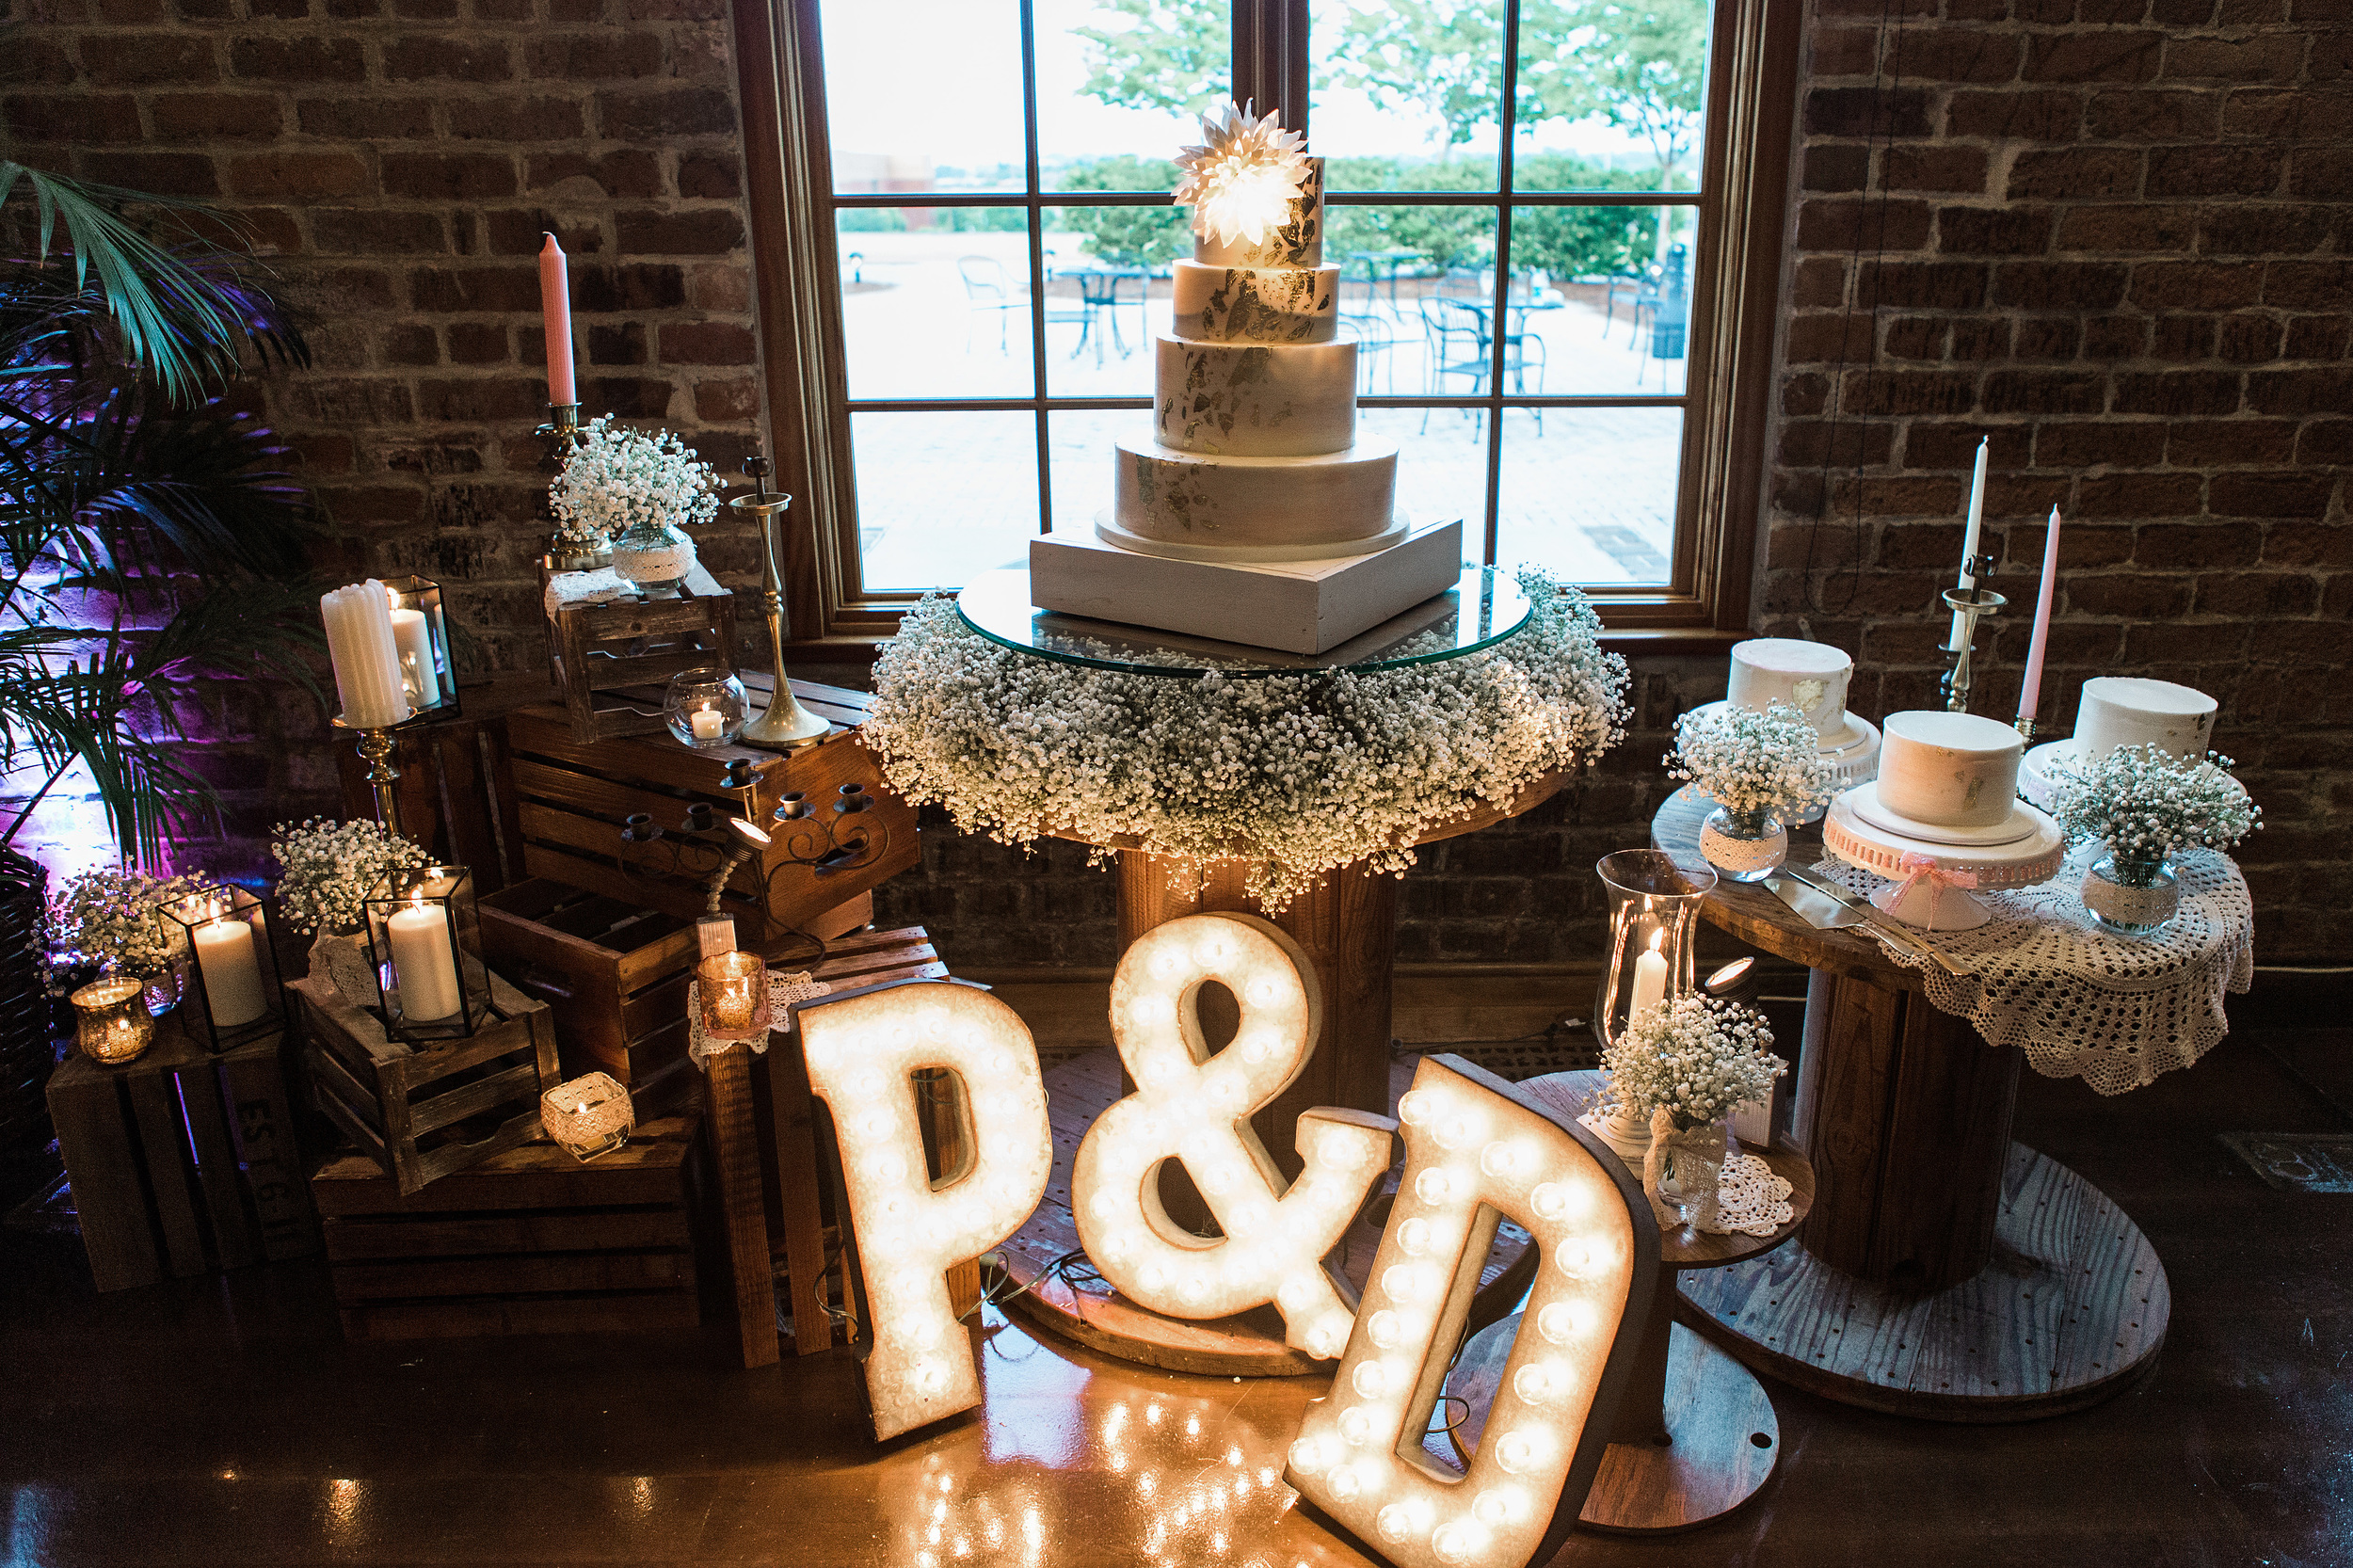 daniela-and-pedro-wedding-izzy-hudgins-photography-a-to-zinnias-whitfield-square-charles-h-morris-center-wedding-ivoyy-and-beau-bridal-boutique-dorie-hayley-paige-savannah-wedding-planner-savannah-bridal-boutique-savannah-weddings-52.jpg